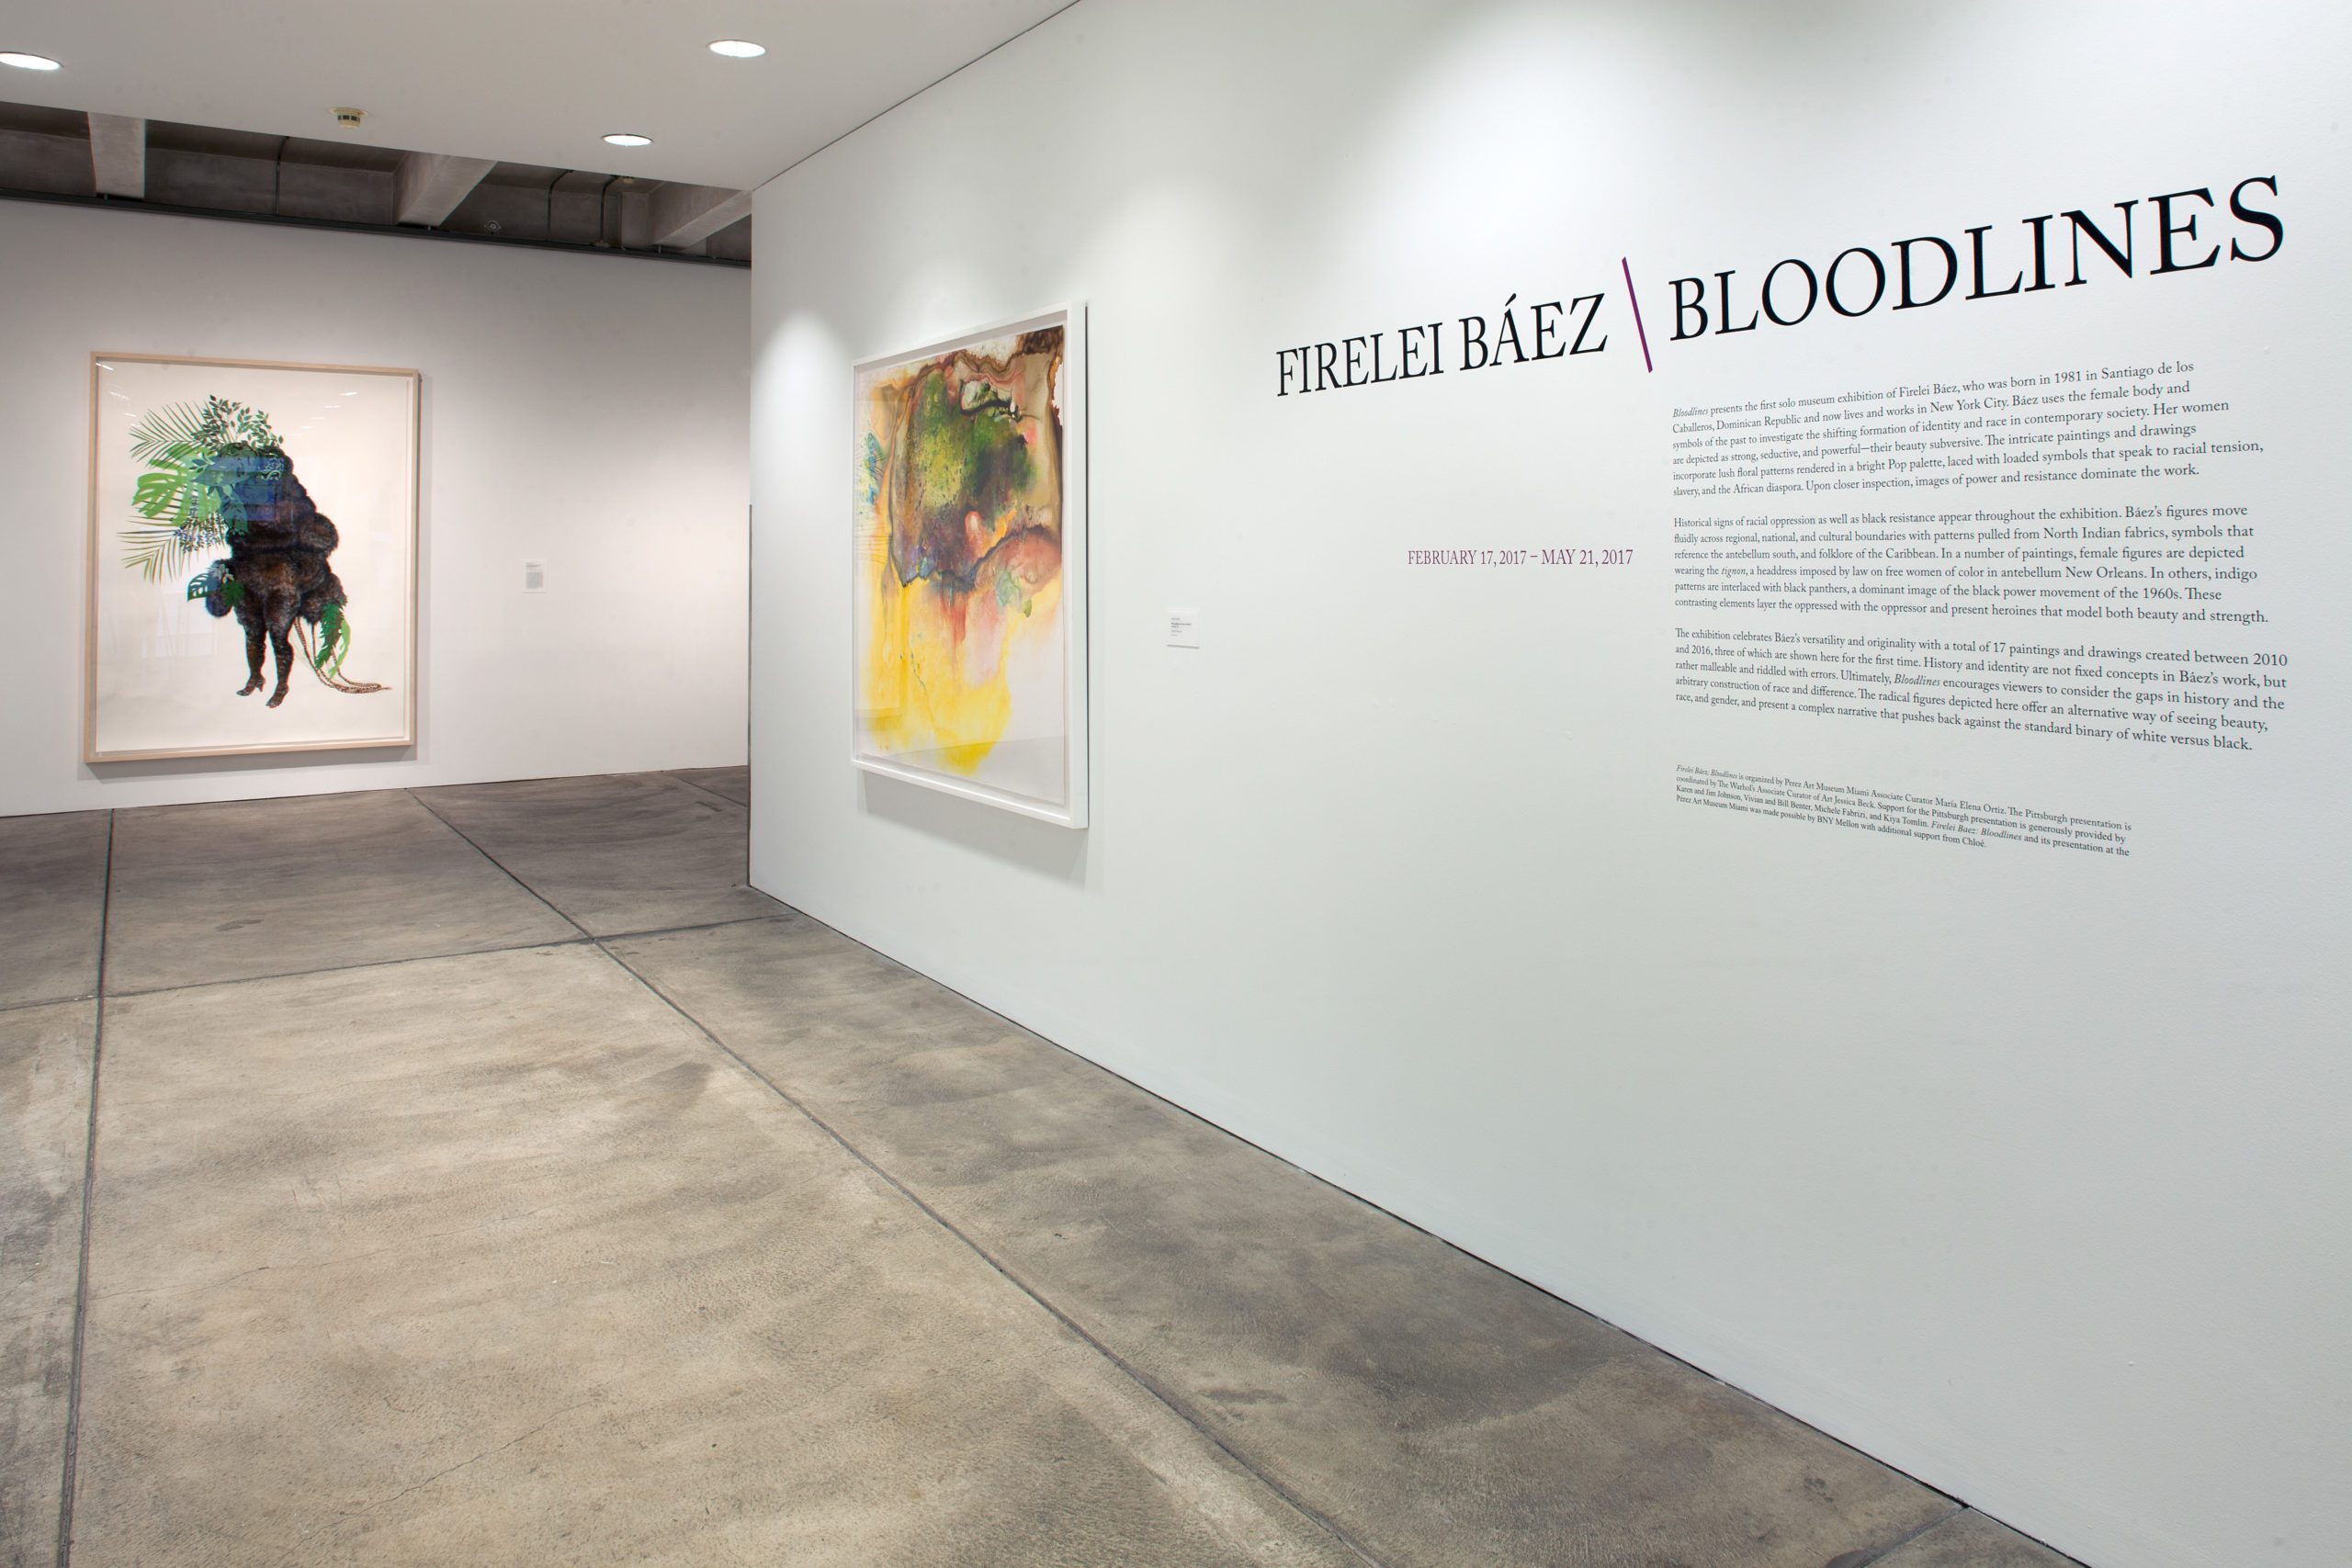 A gallery featuring wall text explaining Firelei Baez's Bloodlines exhibition and two large abstract paintings by the artist.